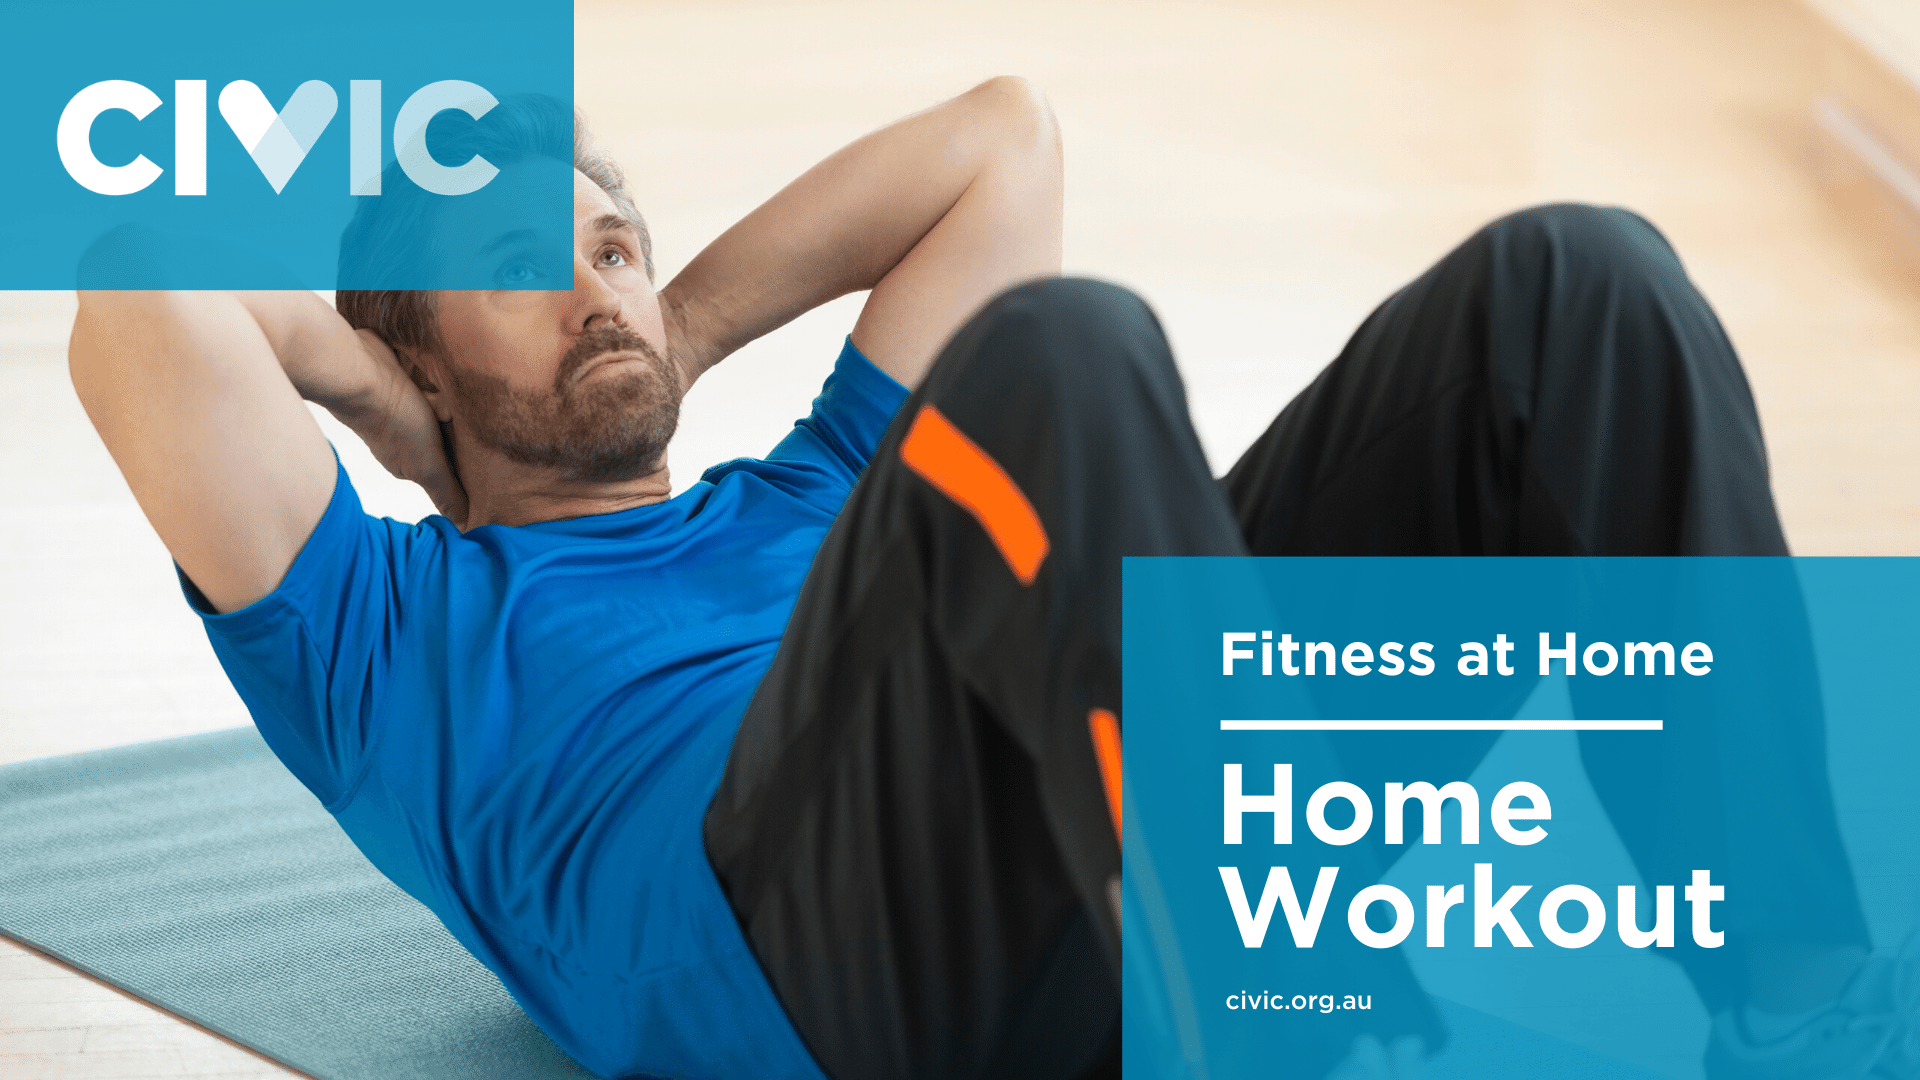 Home workout videos banner